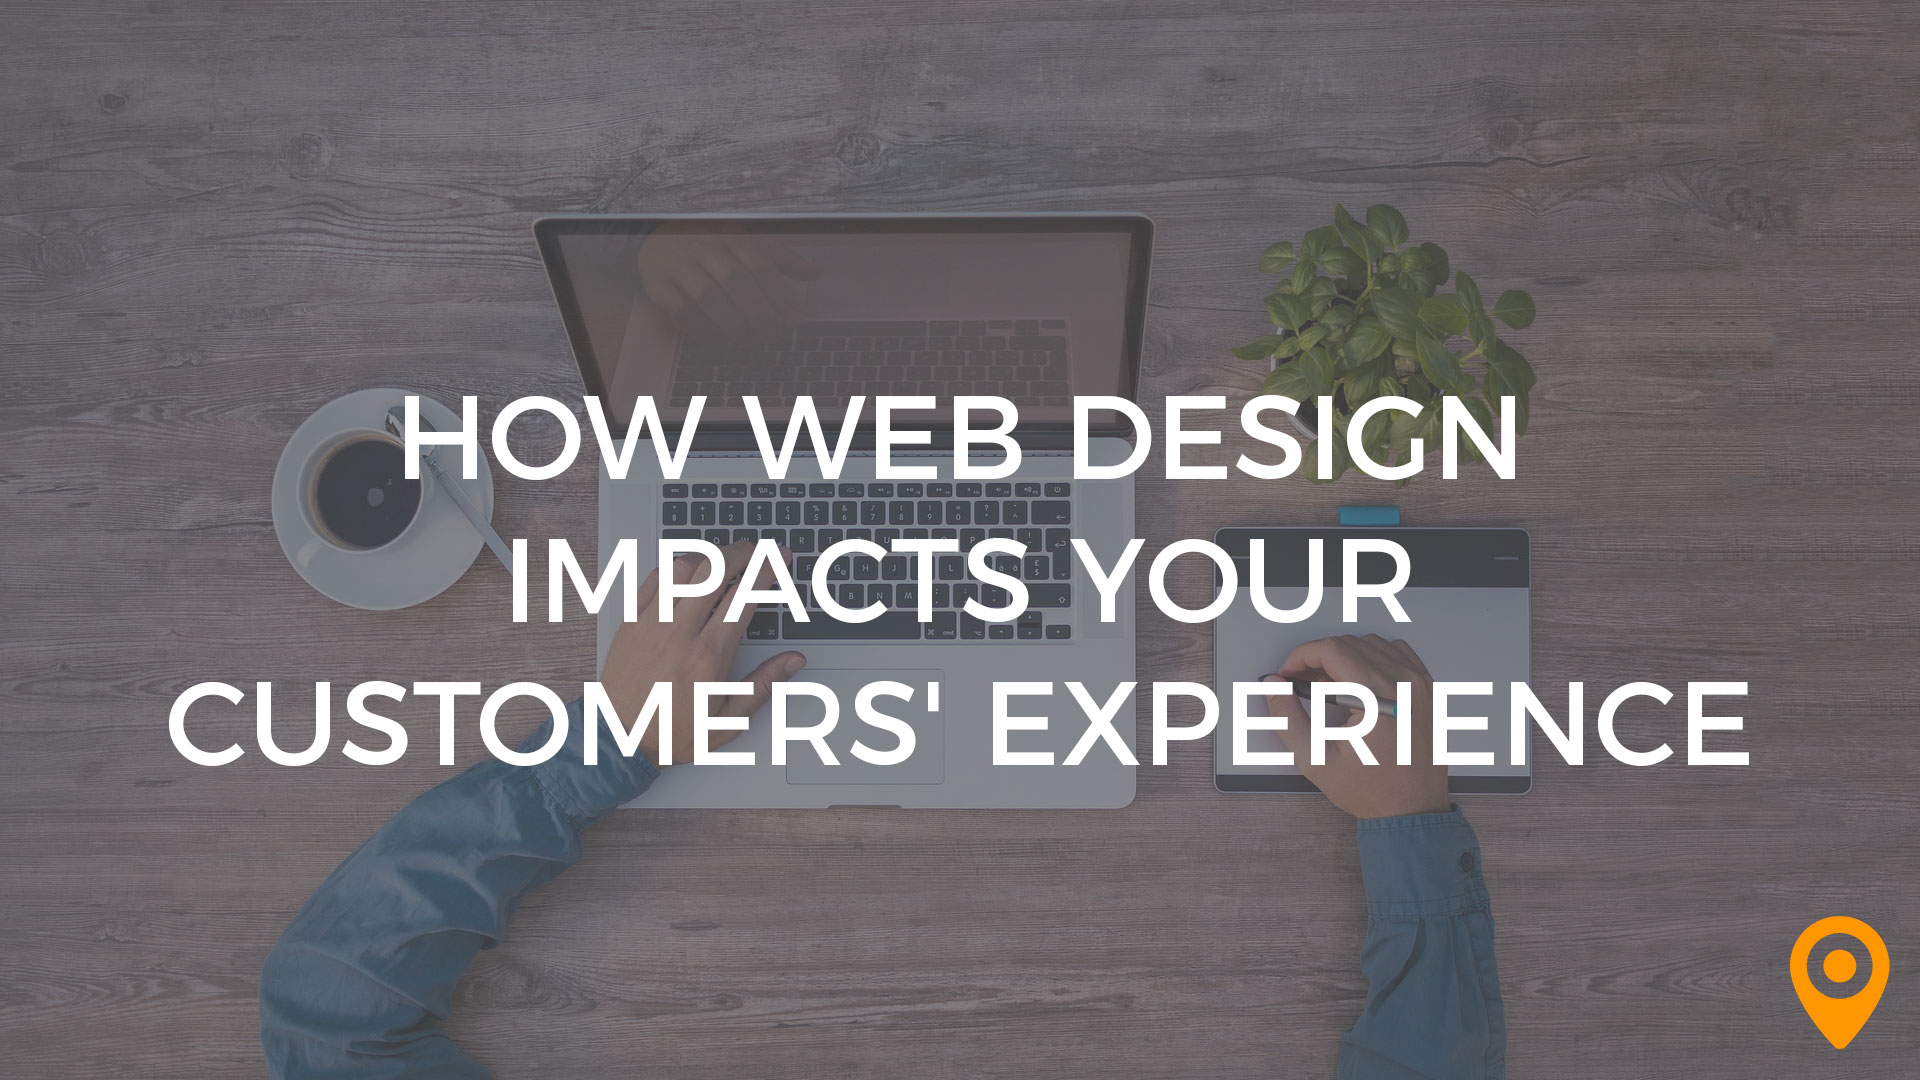 How Web Design Impacts Your Customers' Experience